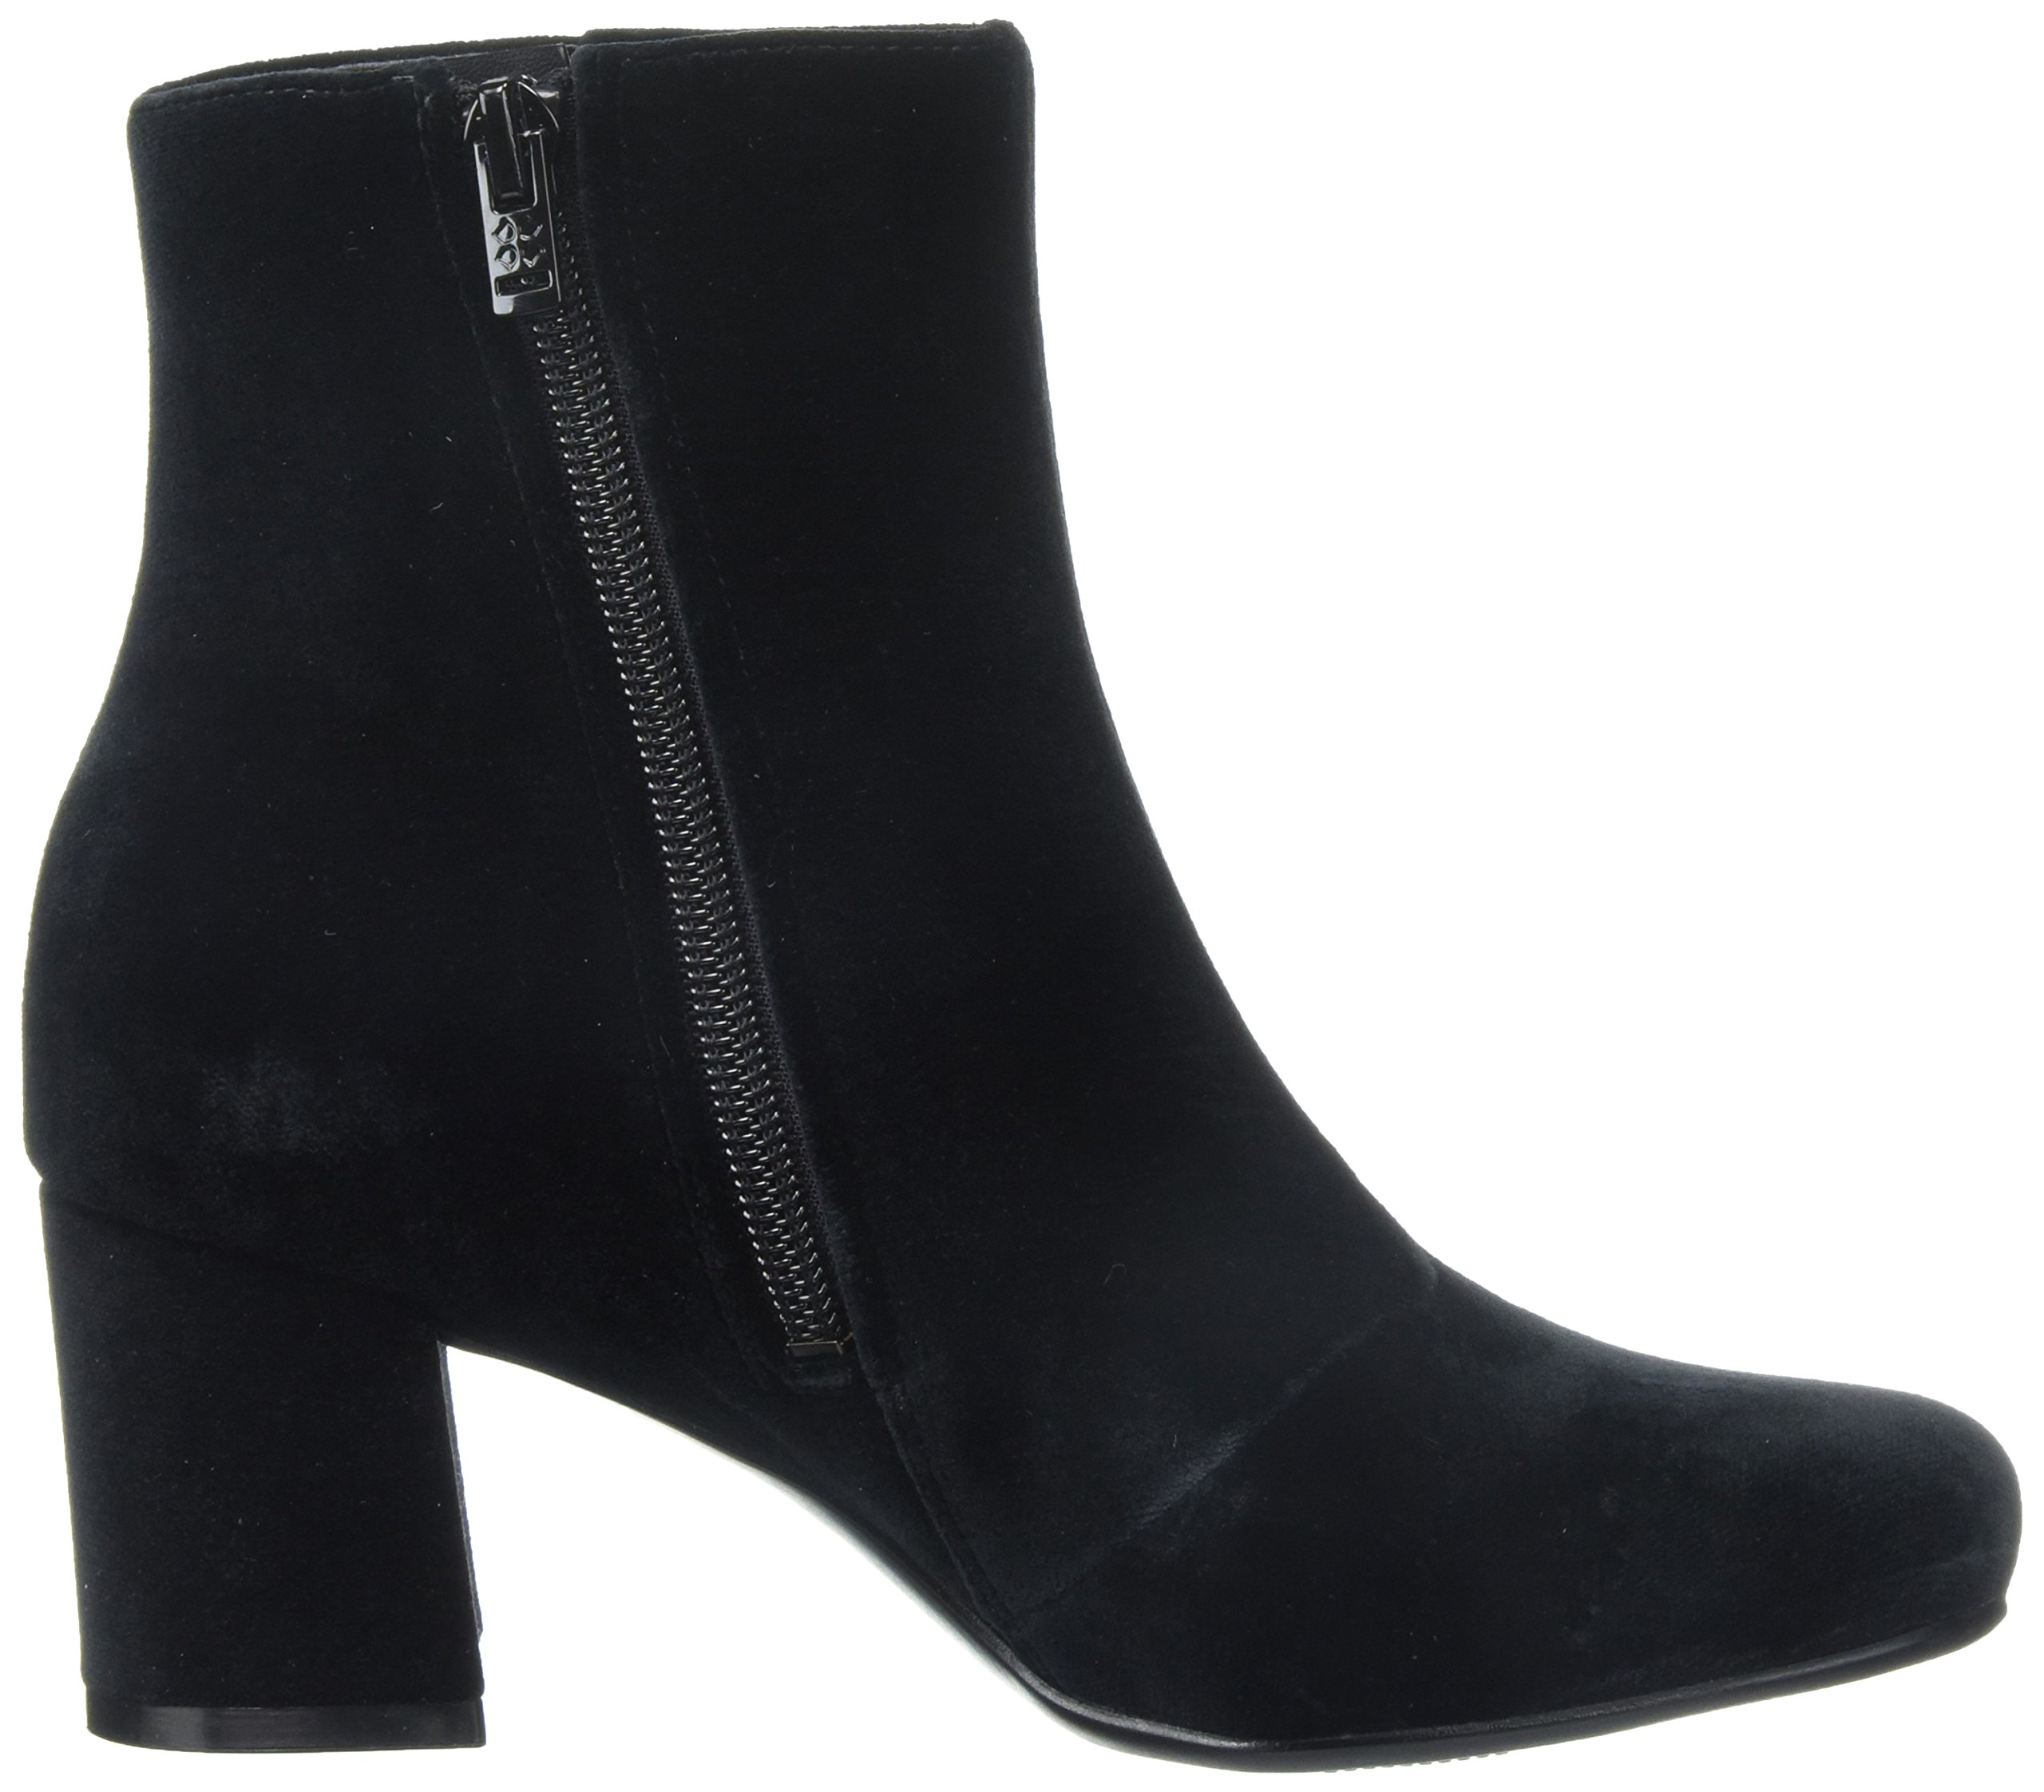 Naturalizer Women's Westing Boot, Black, 6.5 M US by Naturalizer (Image #7)